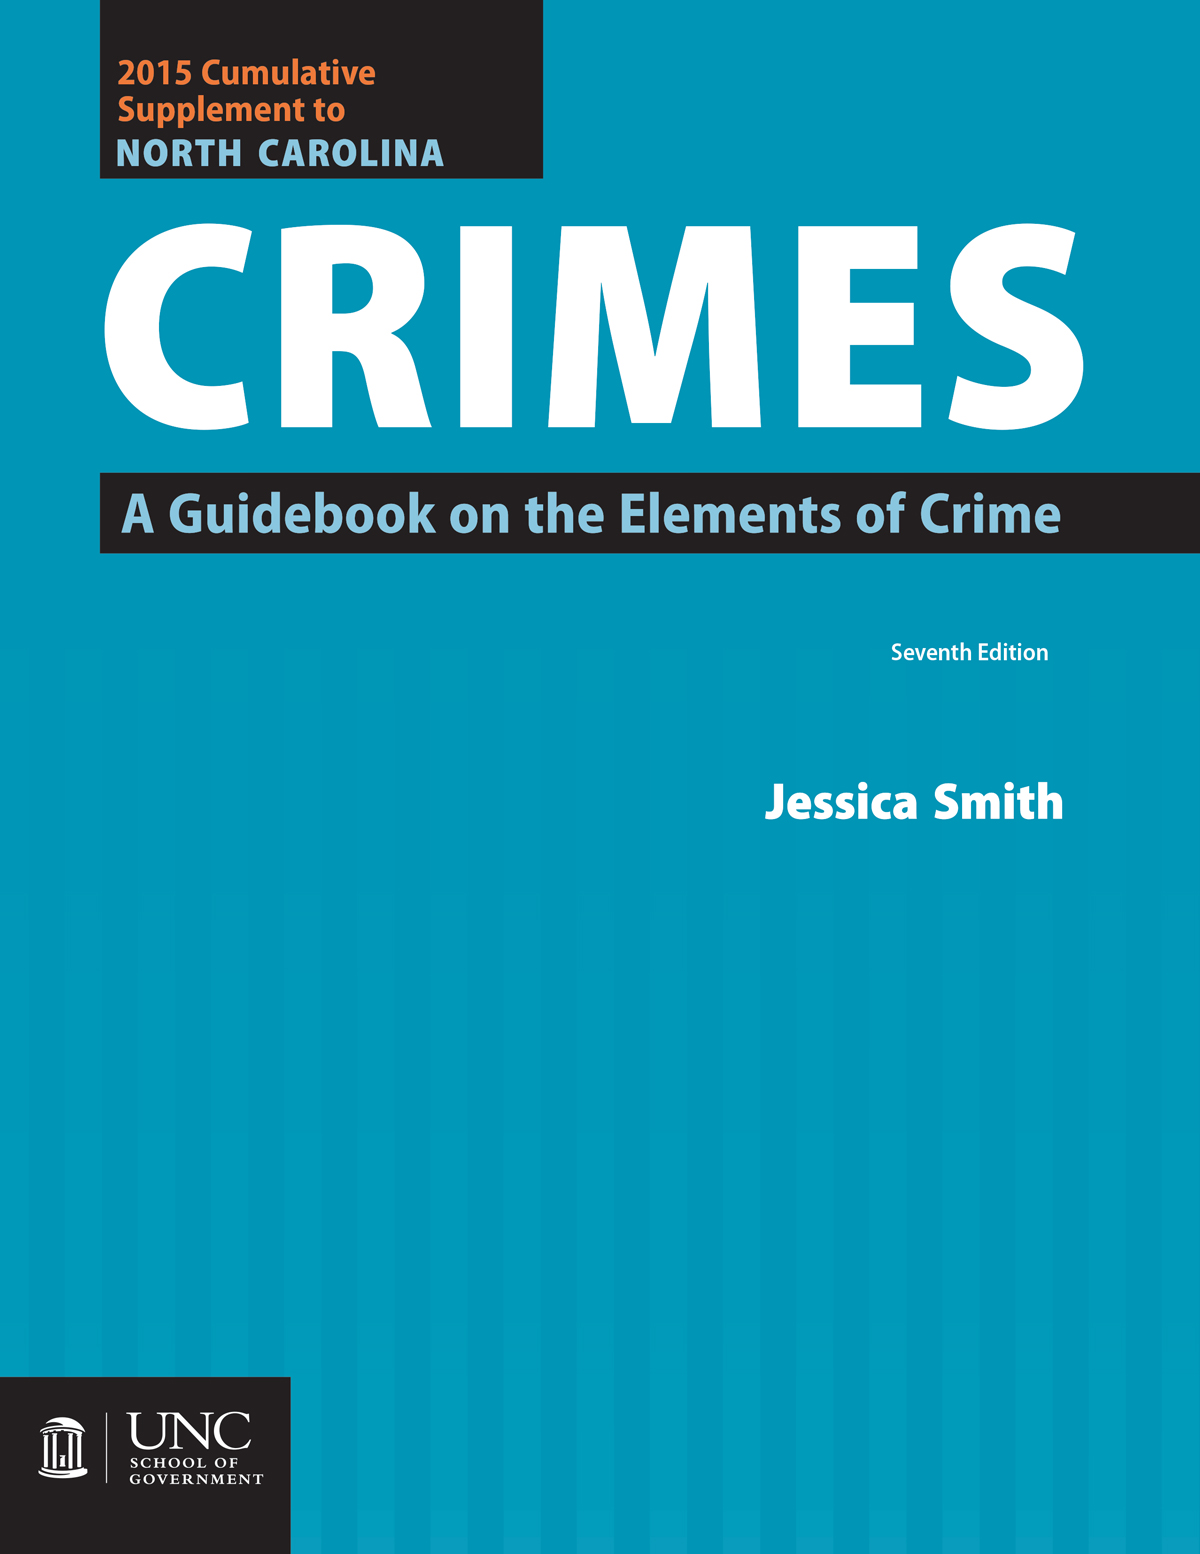 2015 Cumulative Supplement to North Carolina Crimes: A Guidebook on the Elements of Crime, Seventh Edition, 2012